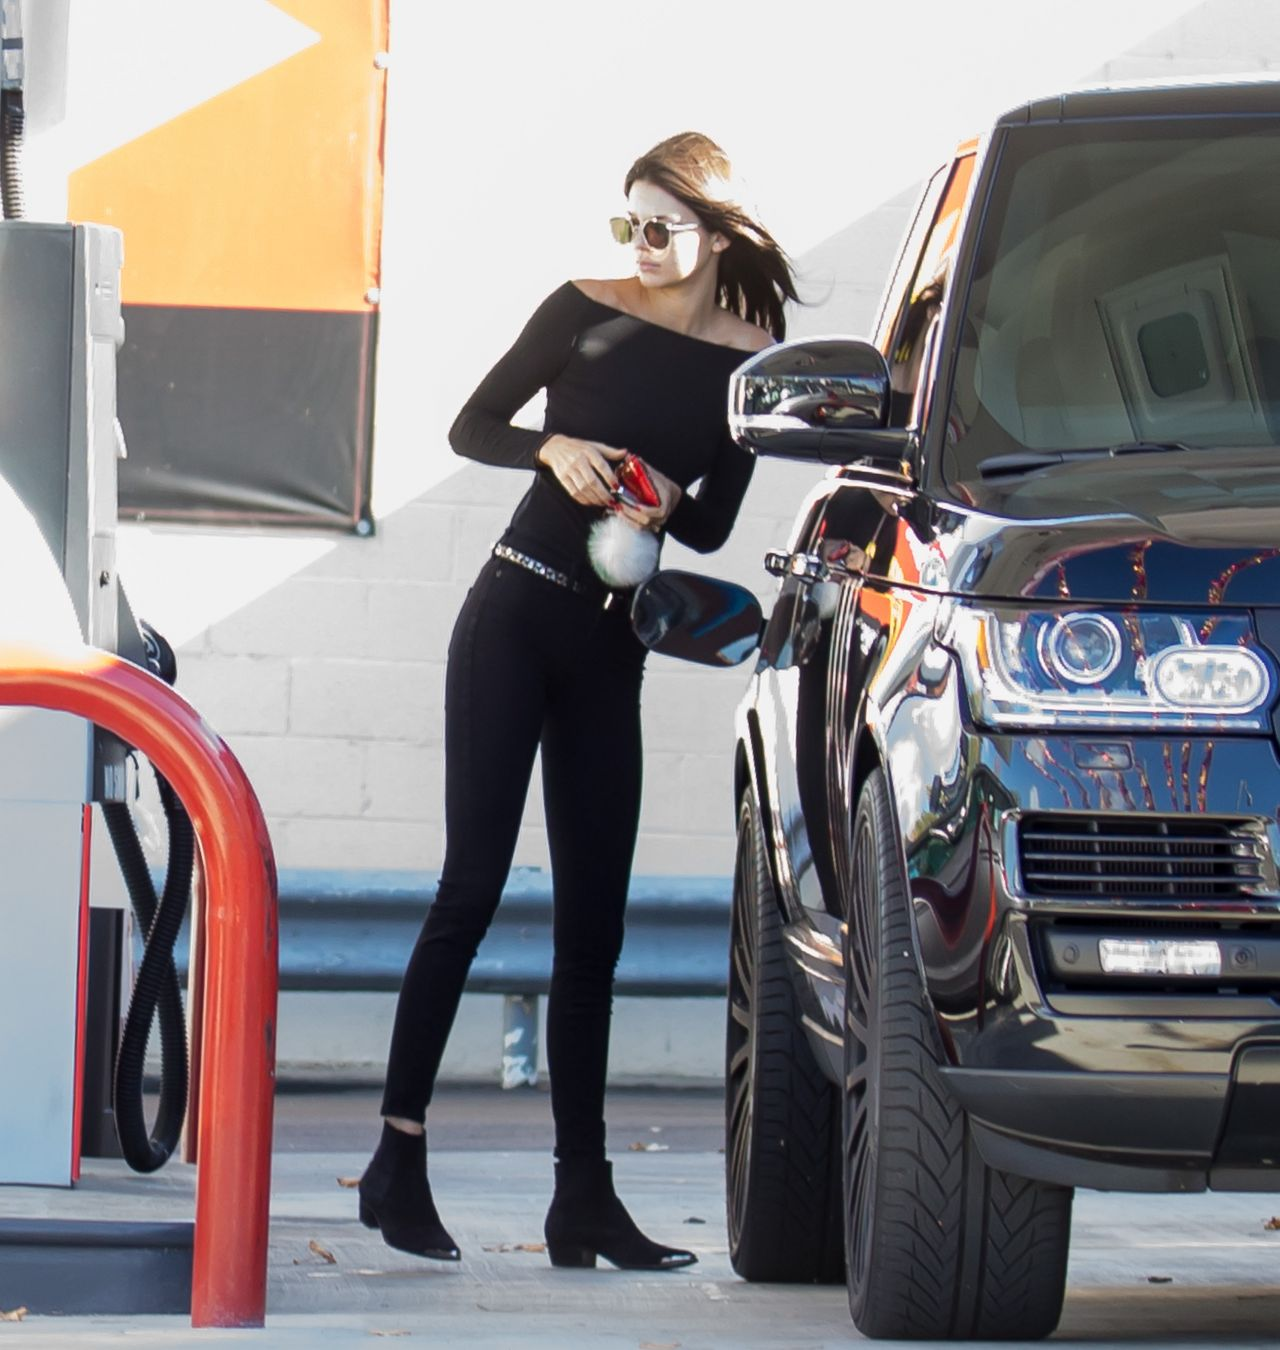 Kendall Jenner Wearing All Black Pumping Gas In Her Range Rover La November 2017